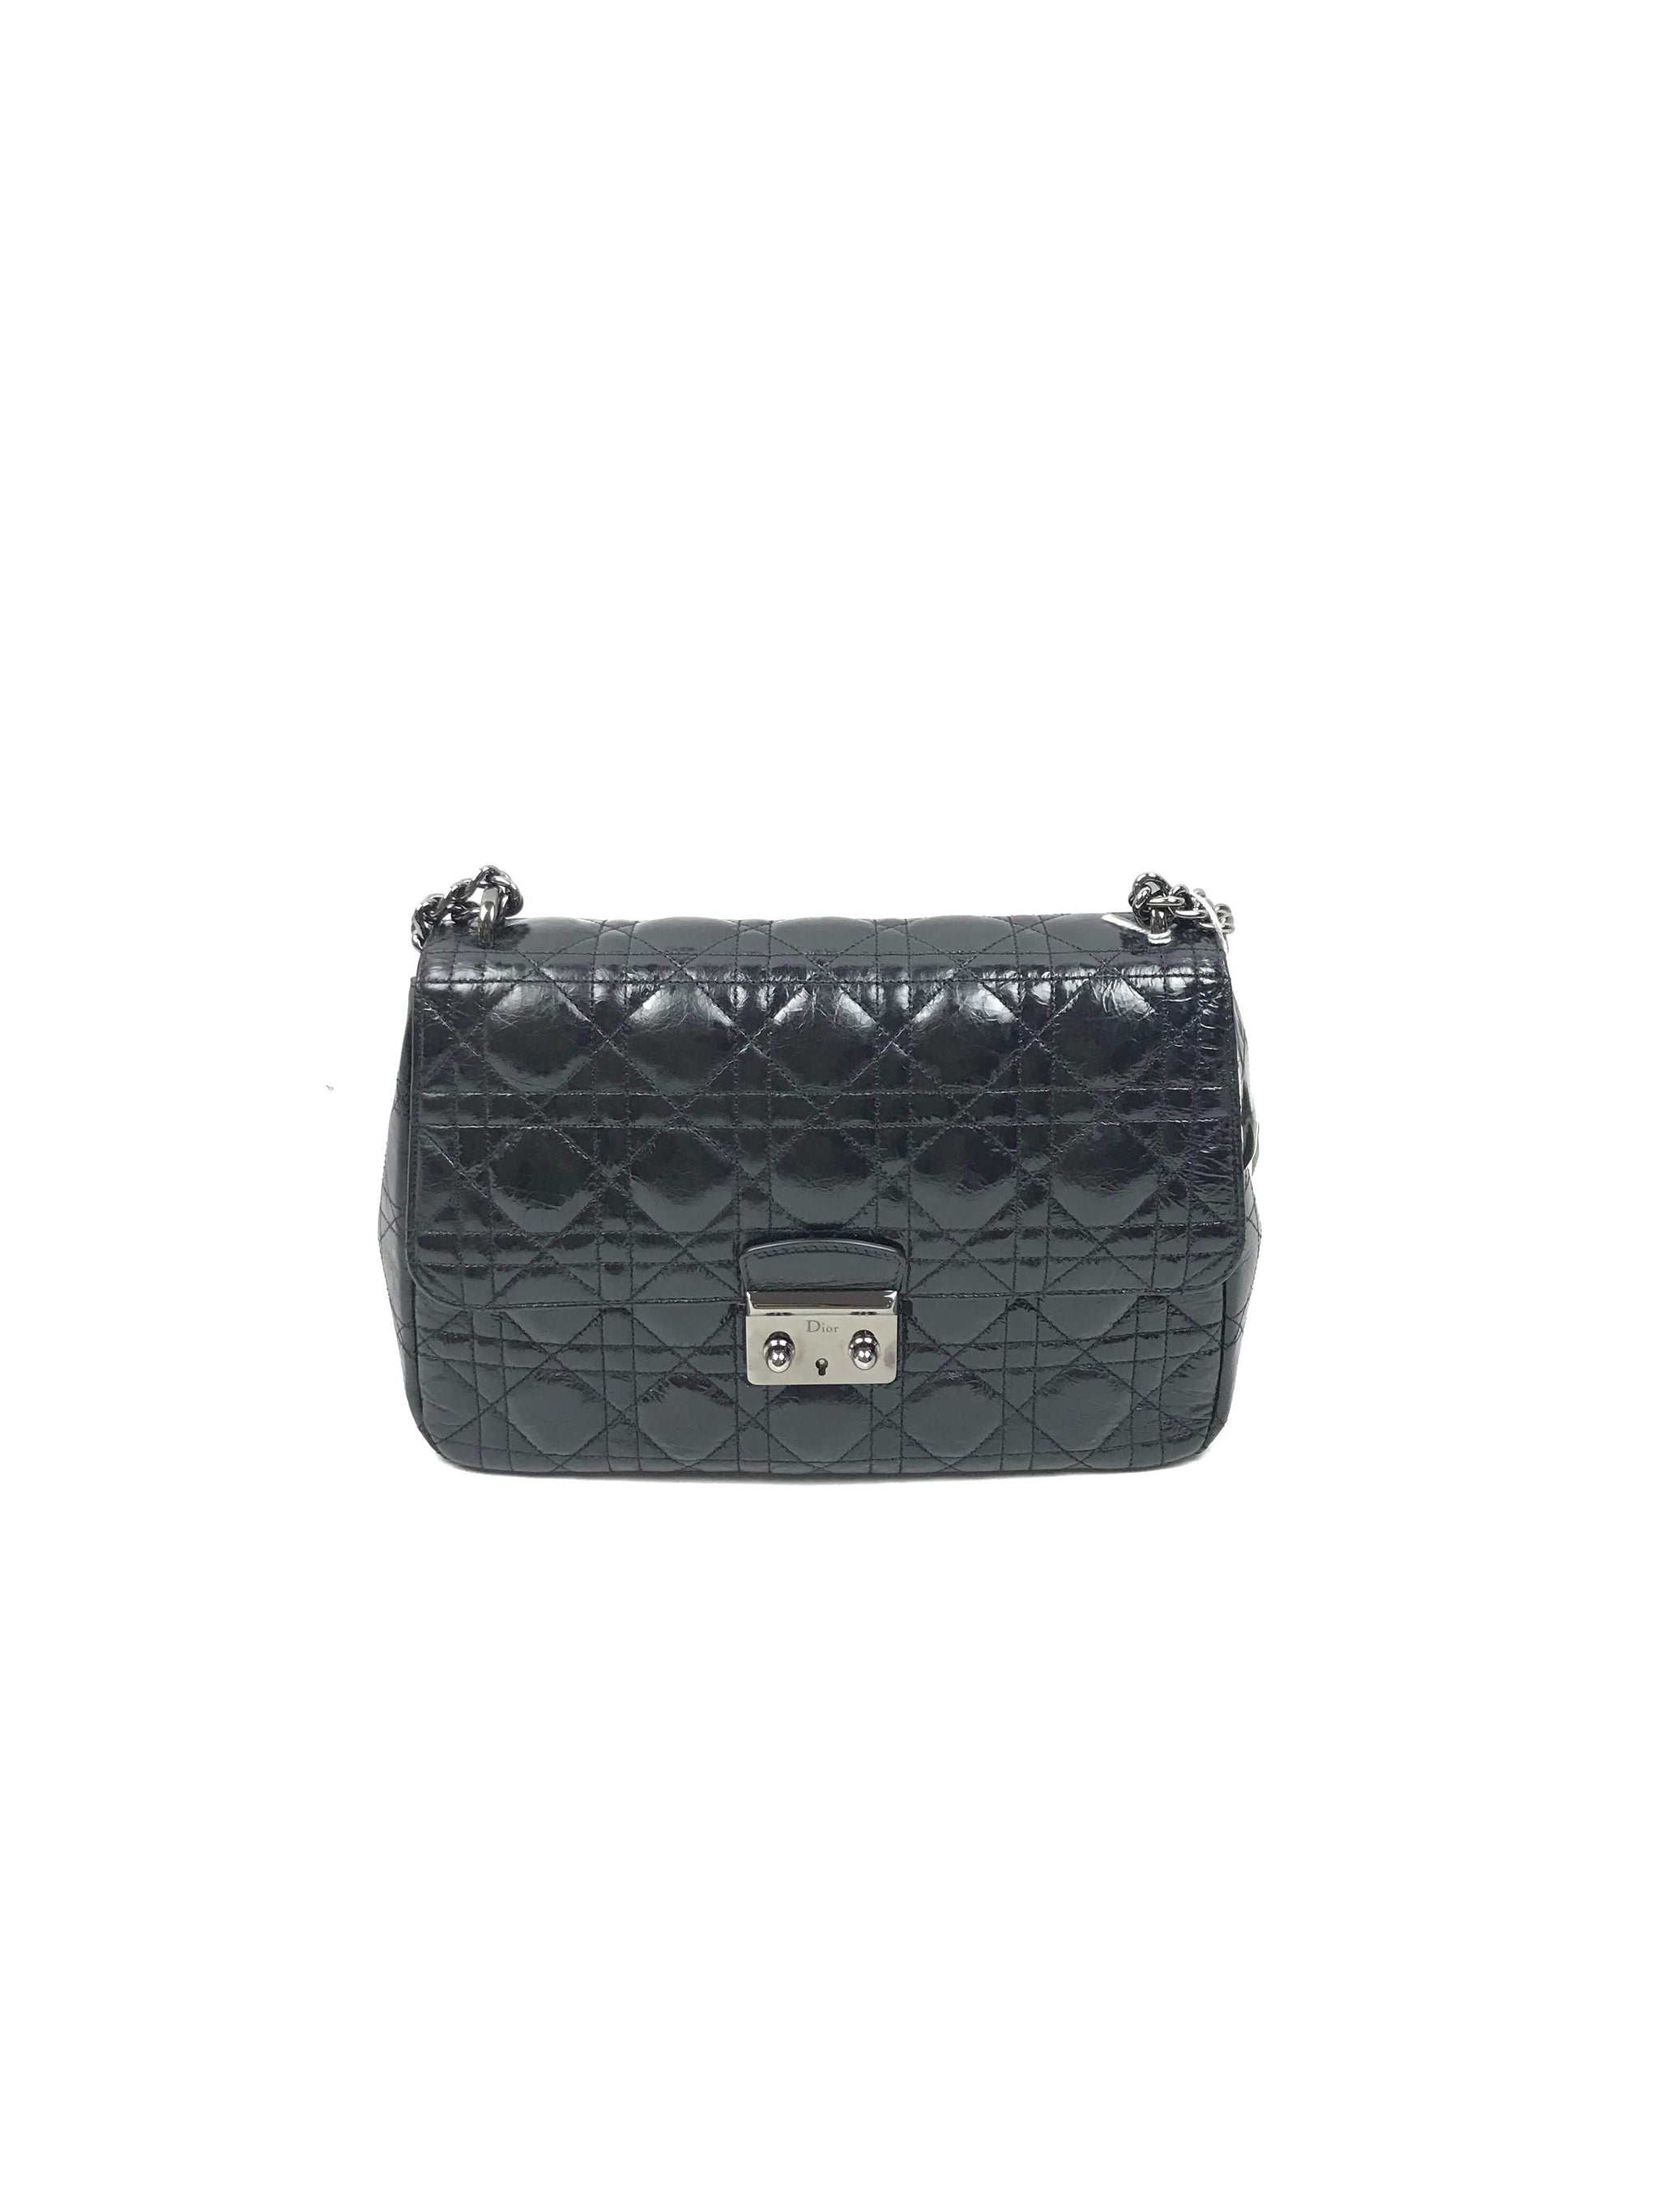 Black Patent Crinkled Calfskin Cannage Miss Dior Large Flap Bag – Haute  Classics e748ee9f0c916